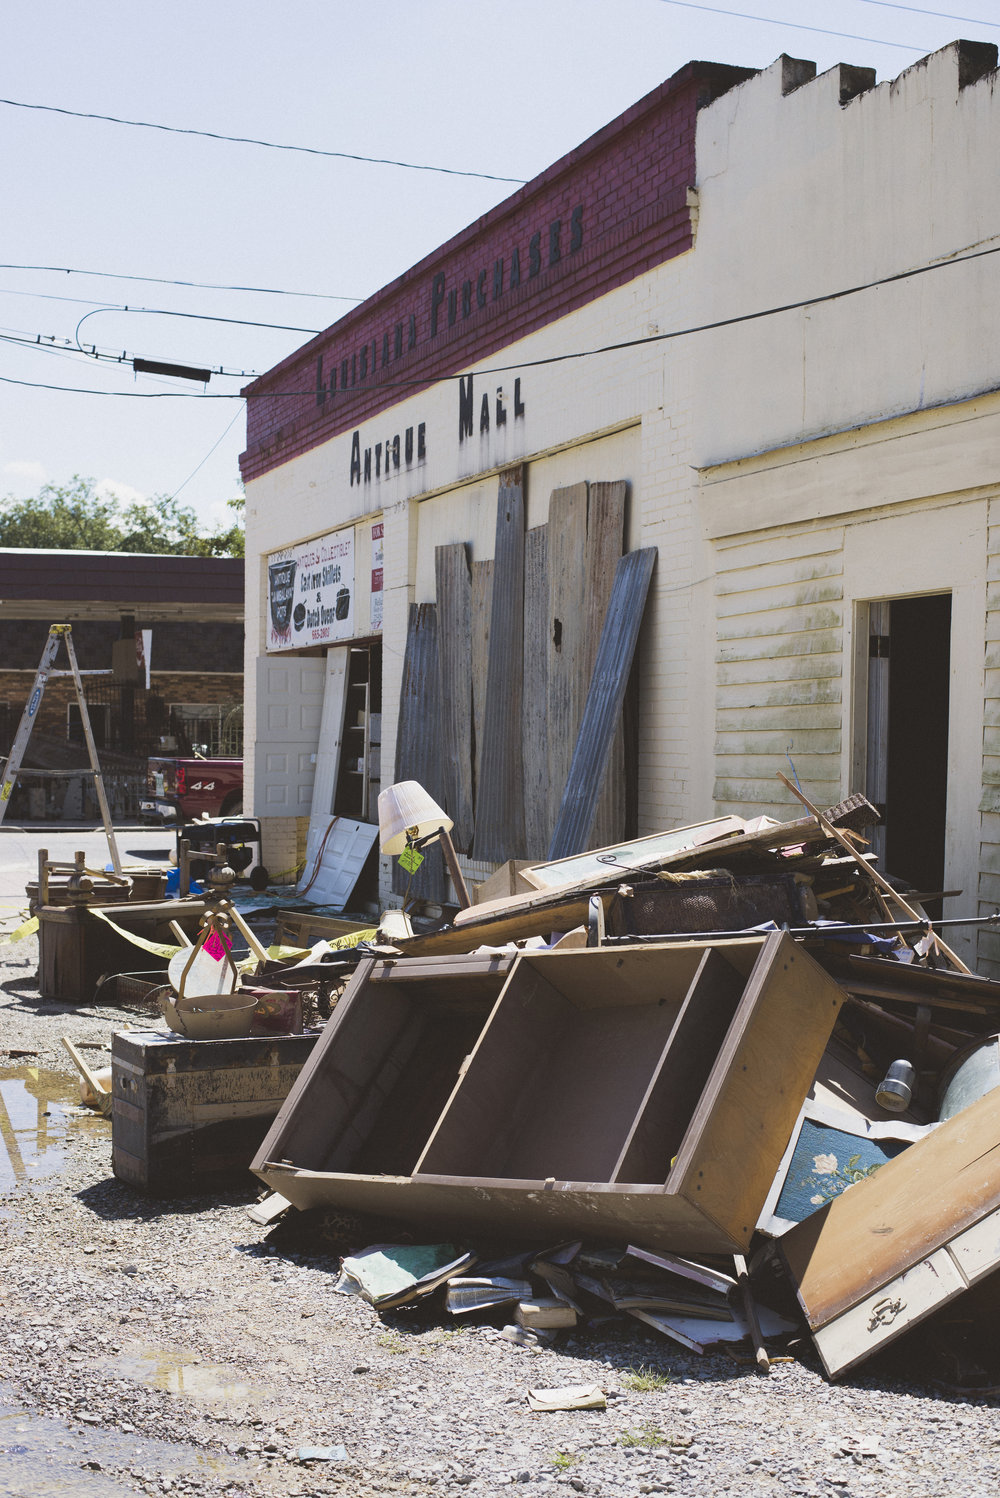 Denham Springs Antique District Flood Aftermath_Allie Appel_4.jpg